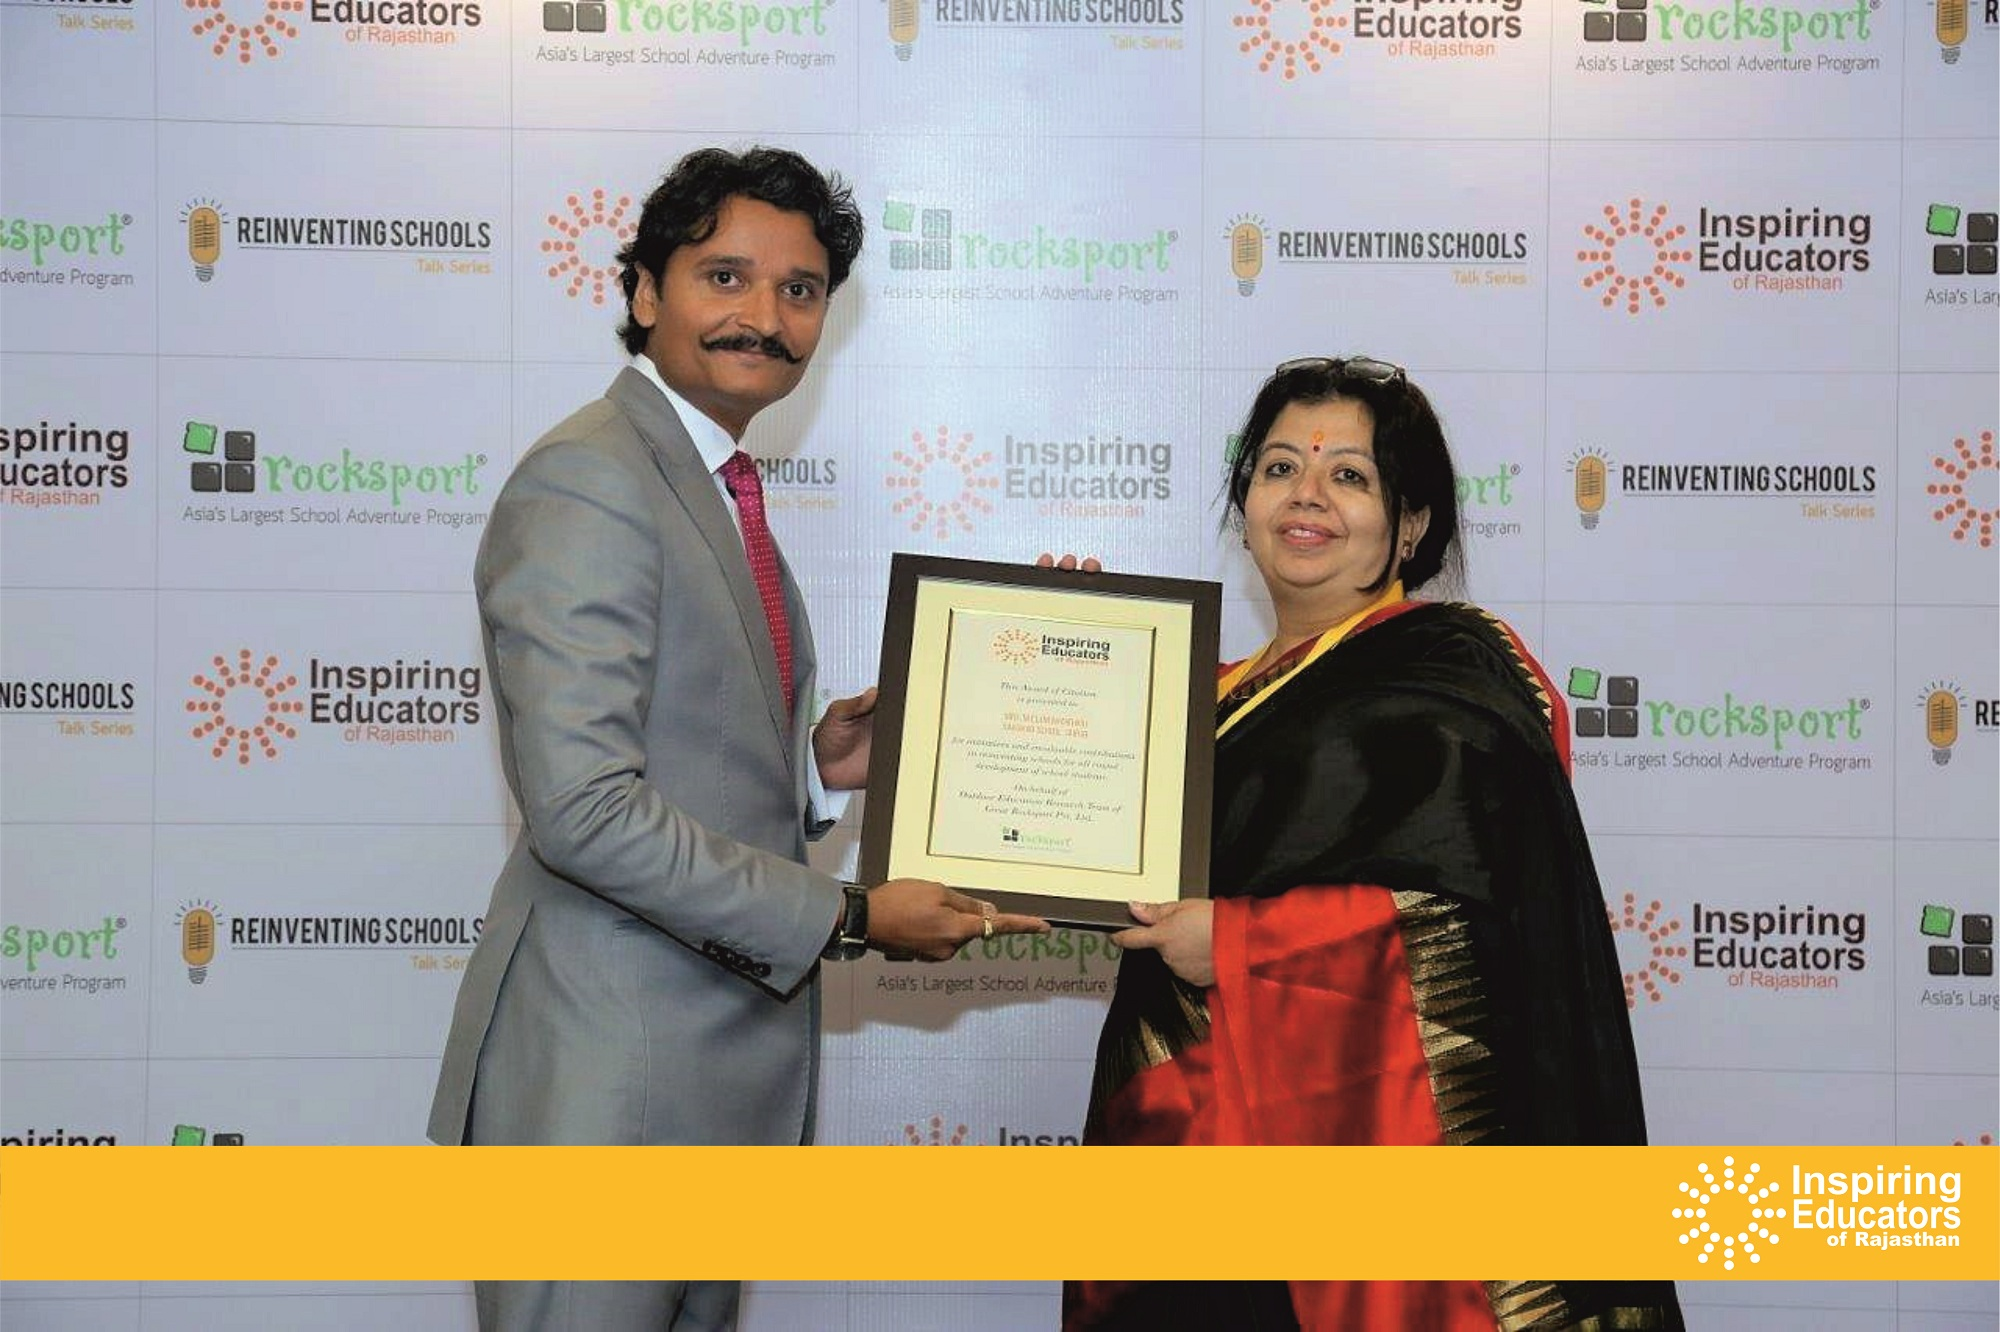 Sanskar School Principal receives 'Inspiring Educator Award'